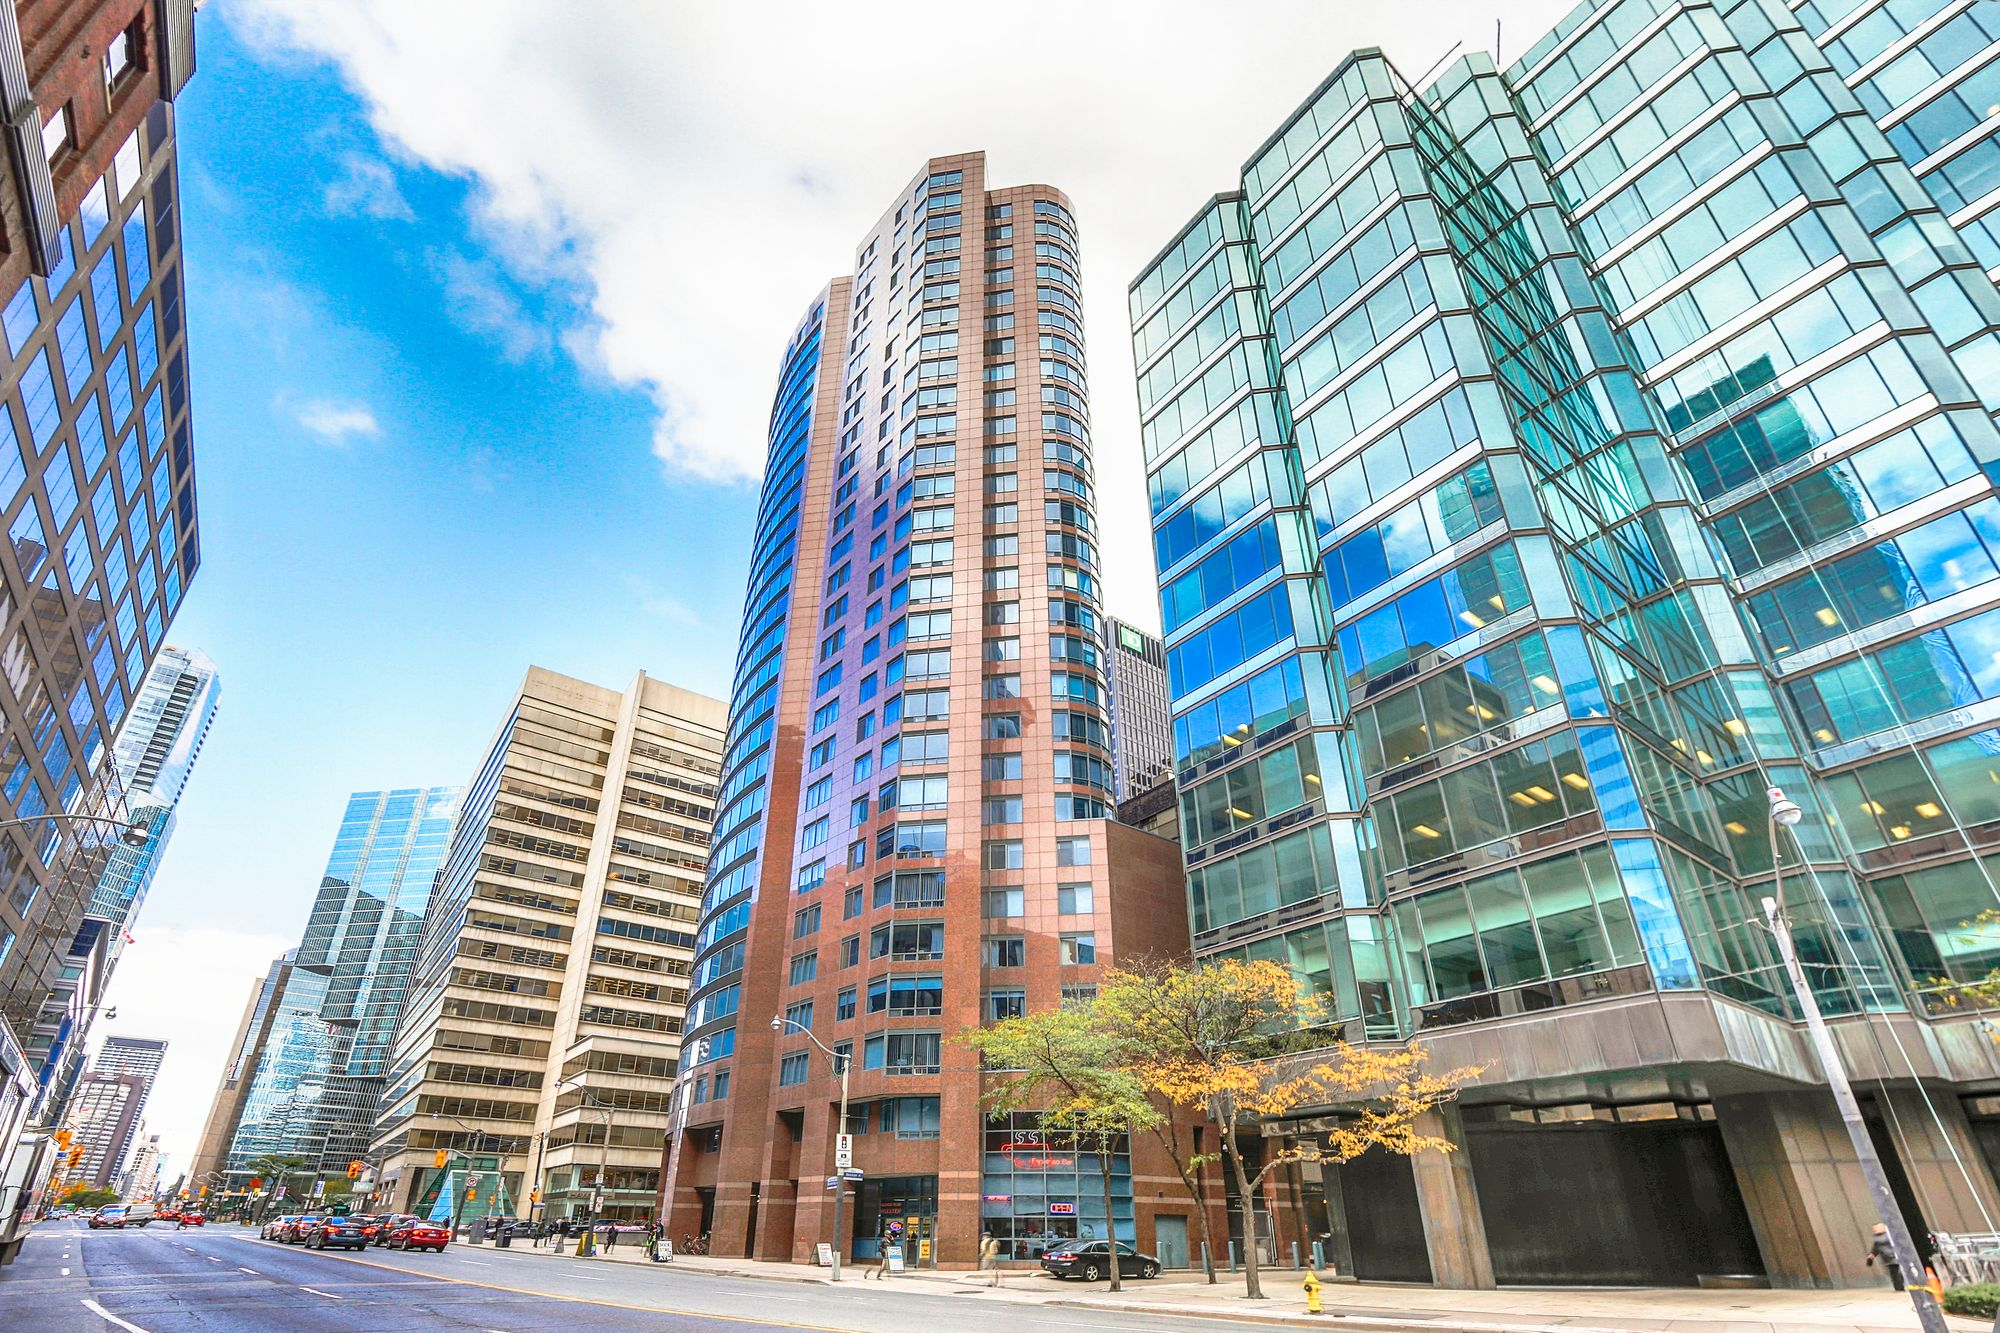 33 University Ave. This condo at Empire Plaza is located in  Downtown, Toronto - image #1 of 4 by Strata.ca